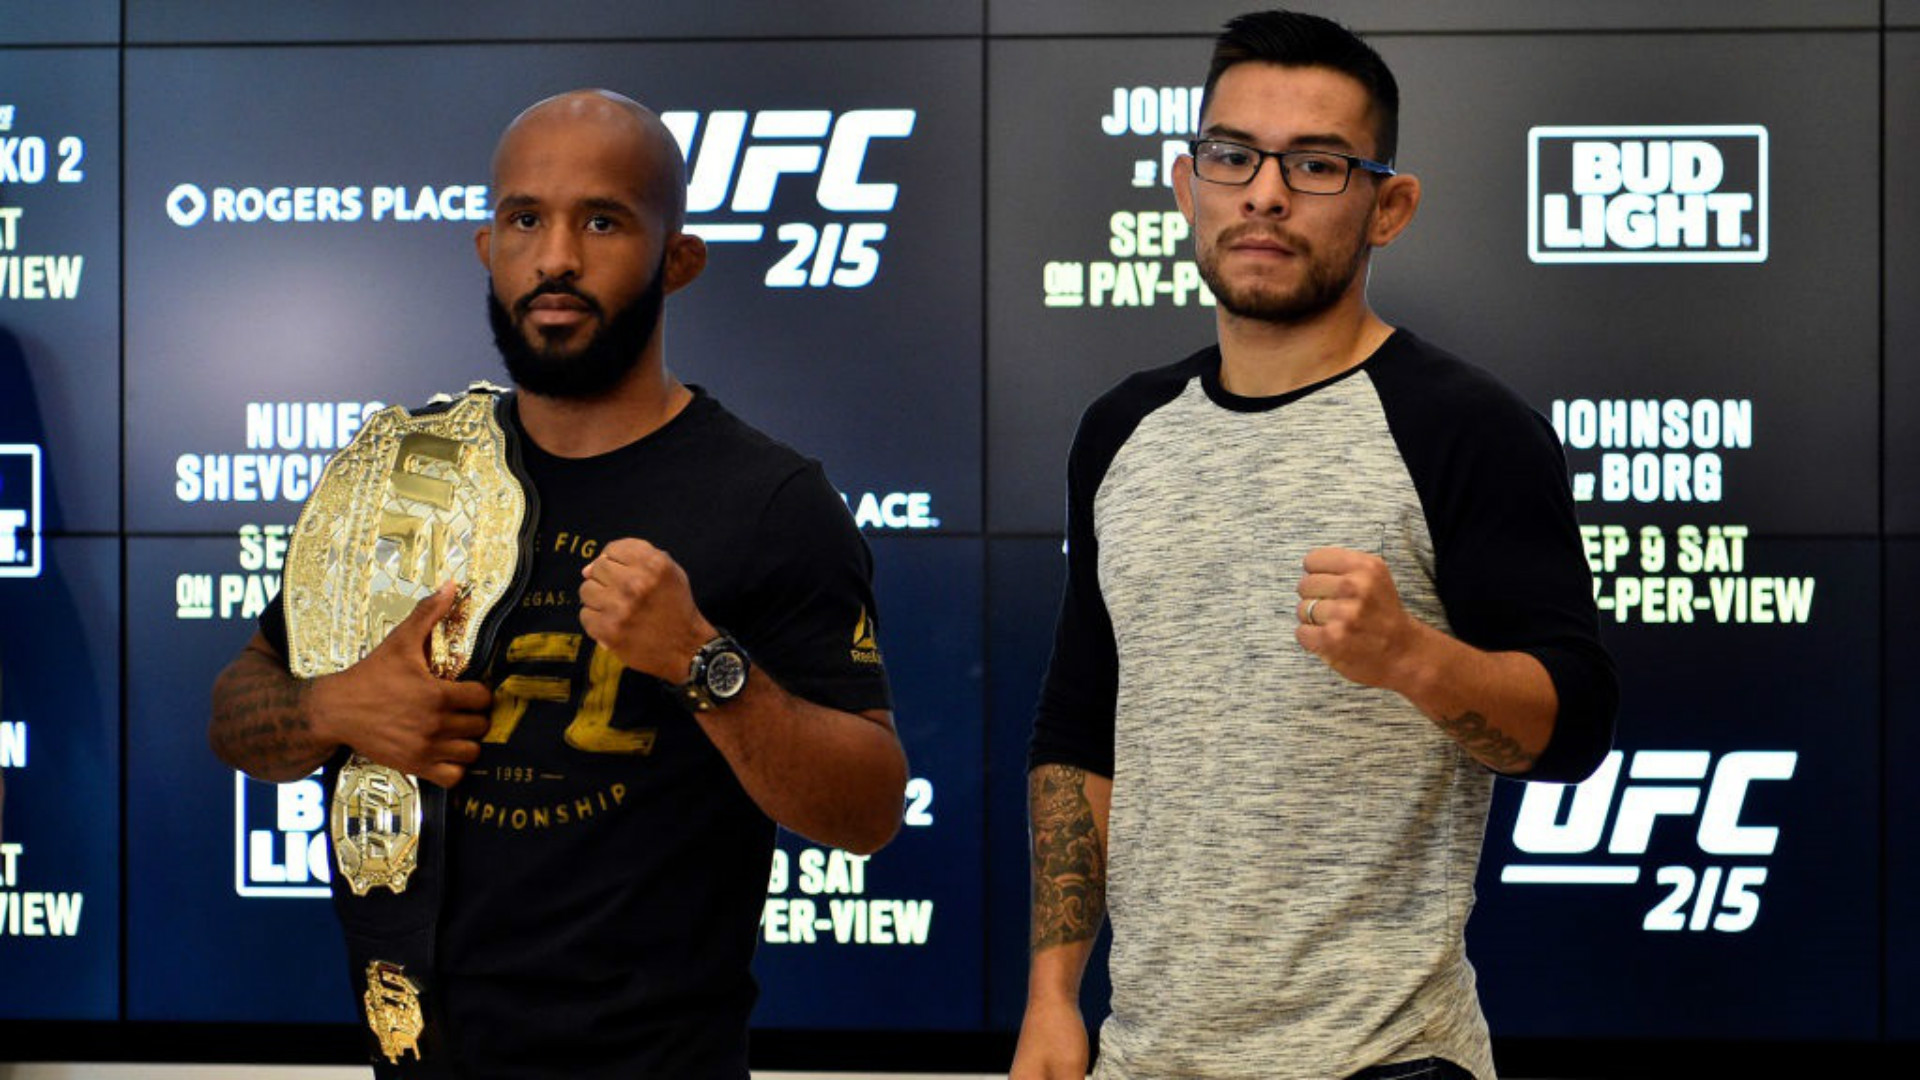 2 title bouts headline UFC 216 in Vegas after shooting